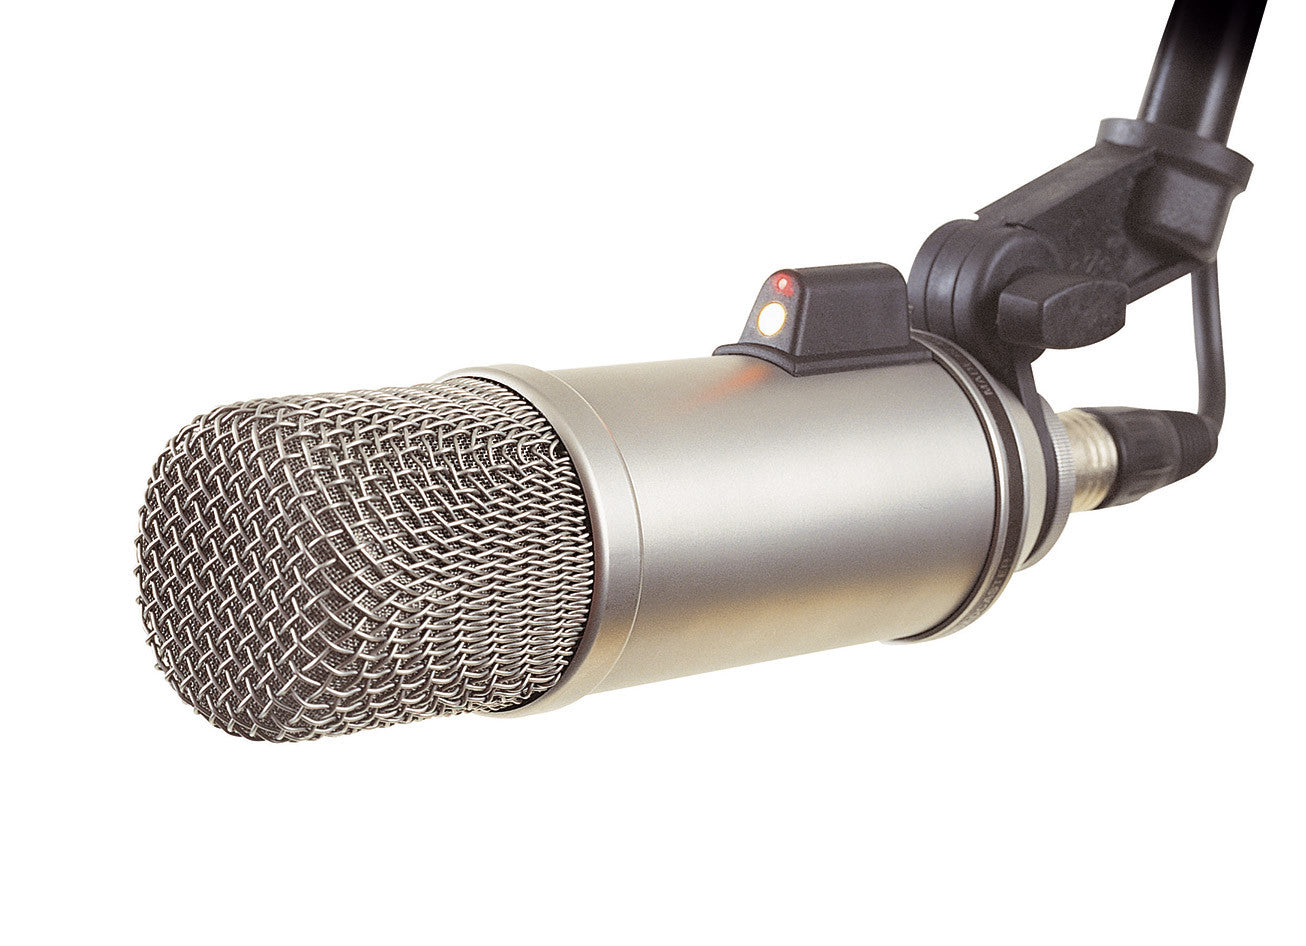 RODE Broadcaster Condenser Microphone - Audio - RØDE - Helix Camera